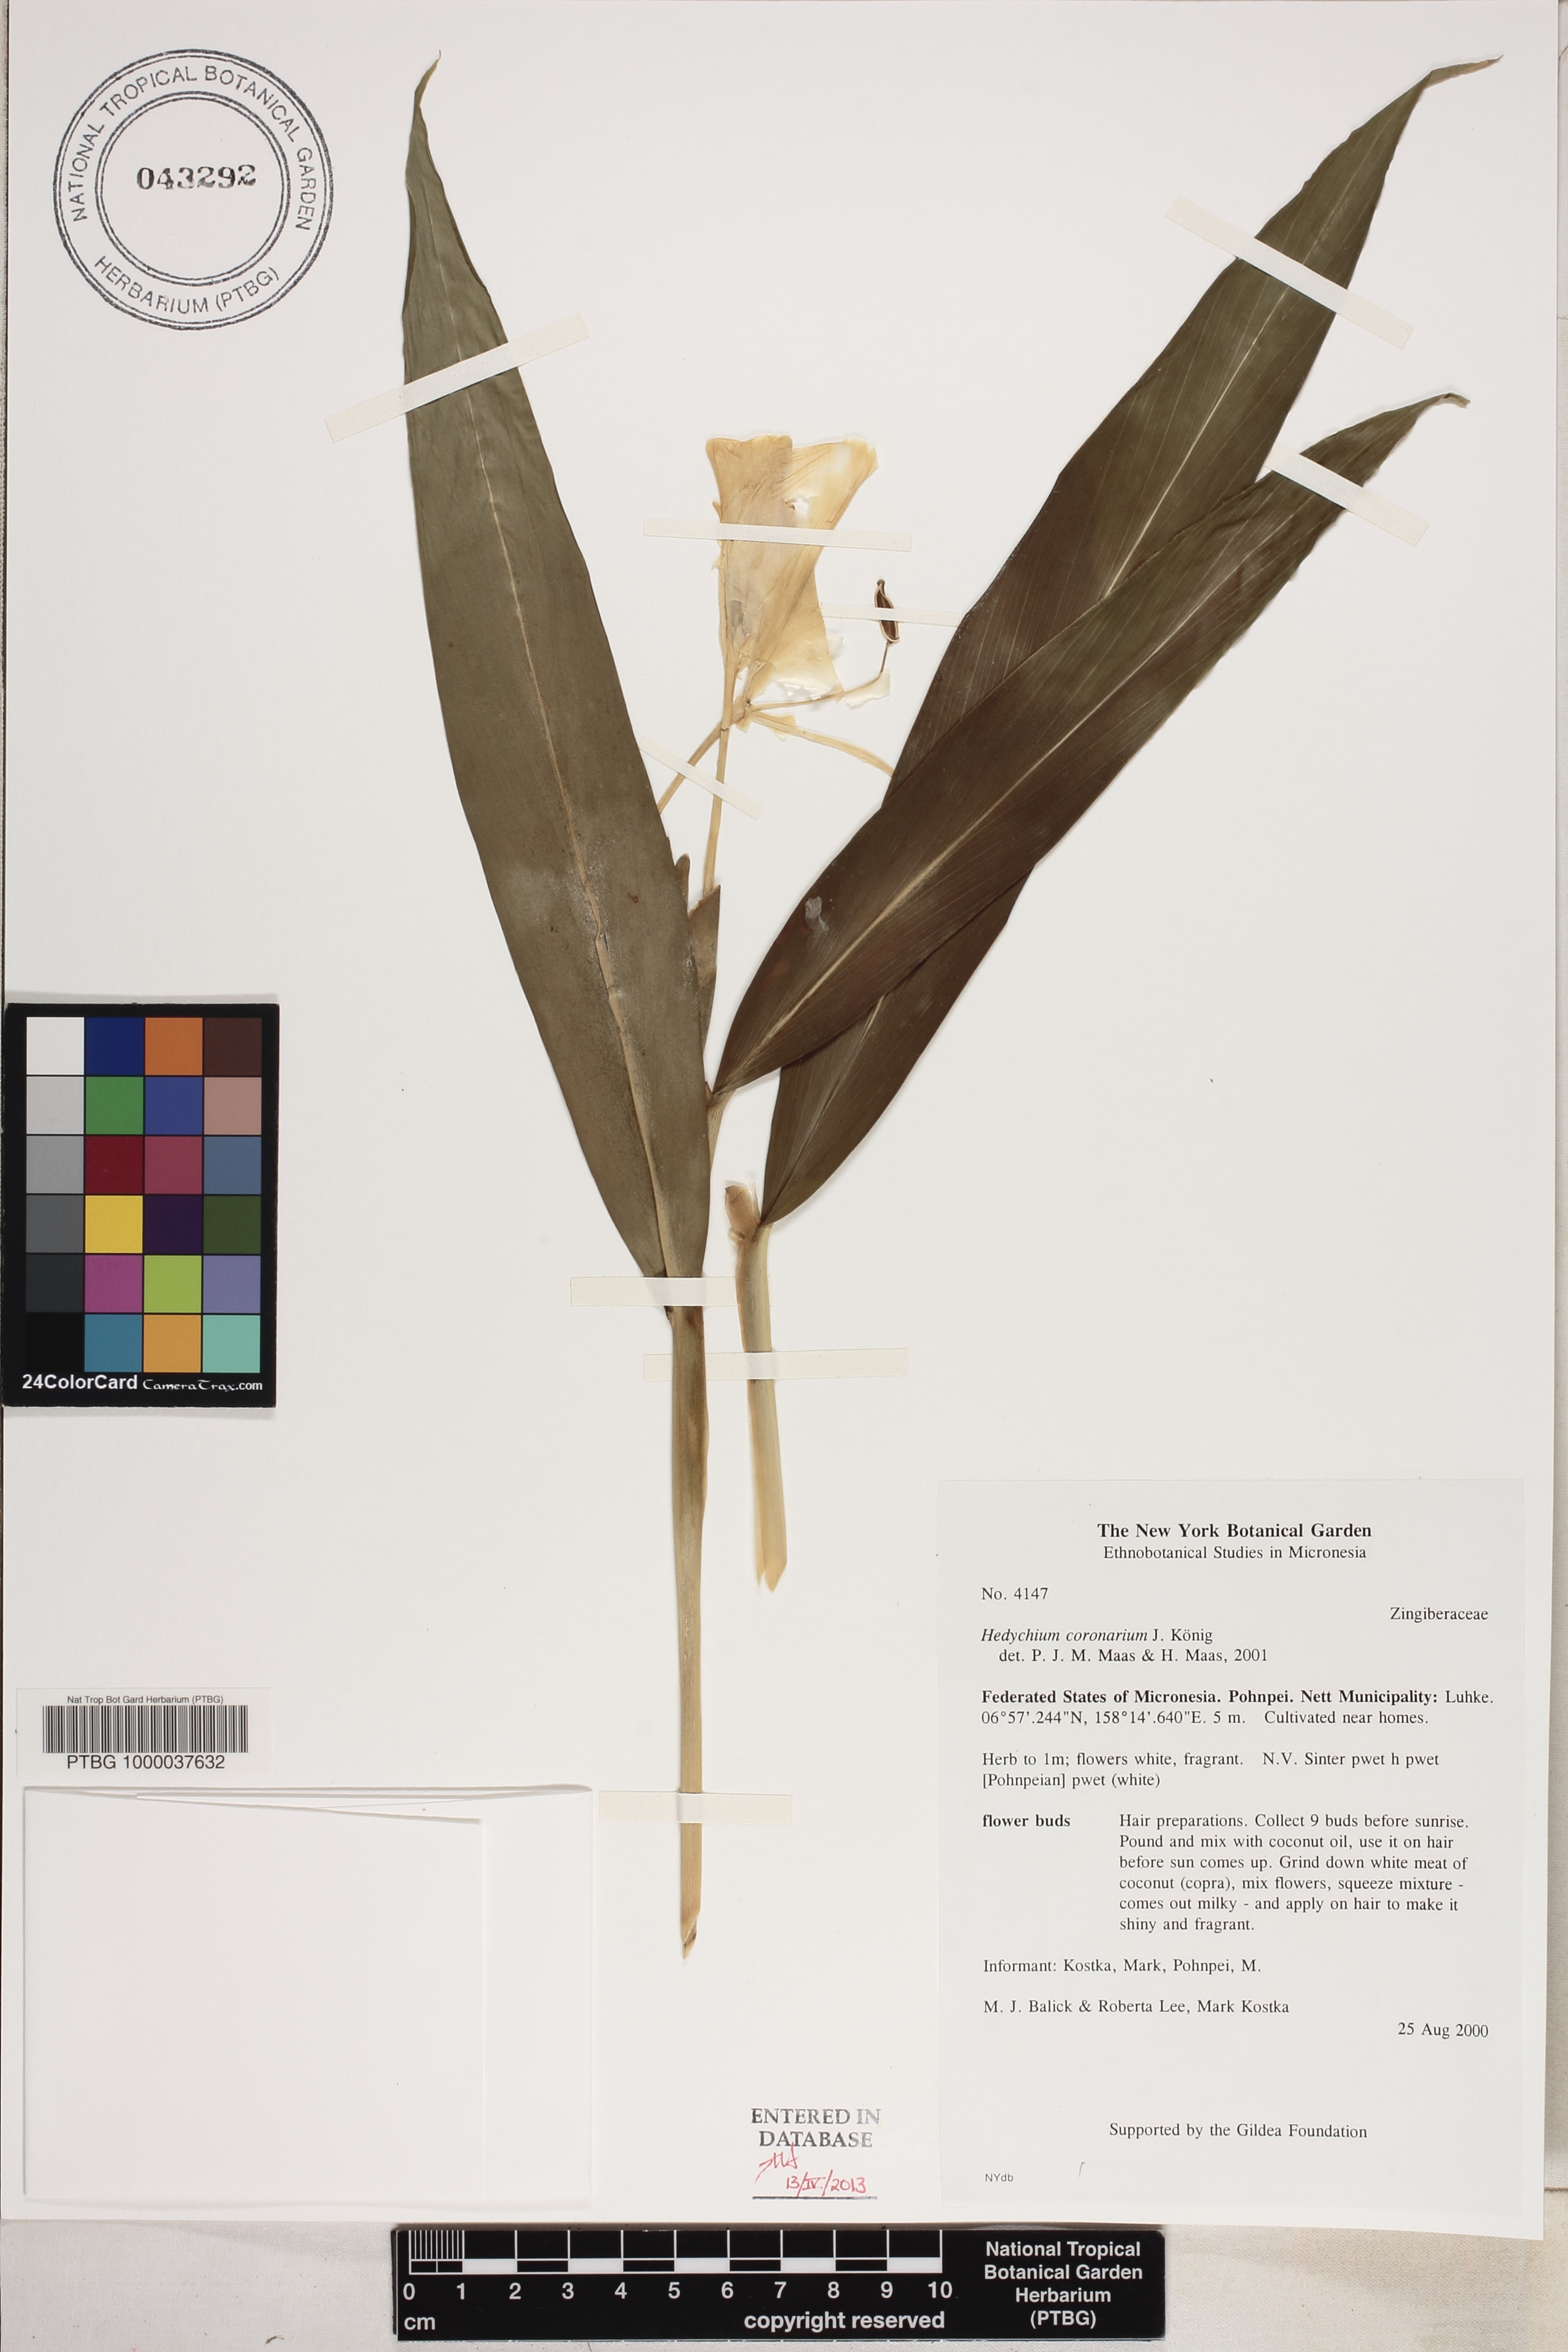 Ntbg Herbarium Search Engine Herbarium Sheet National Tropical